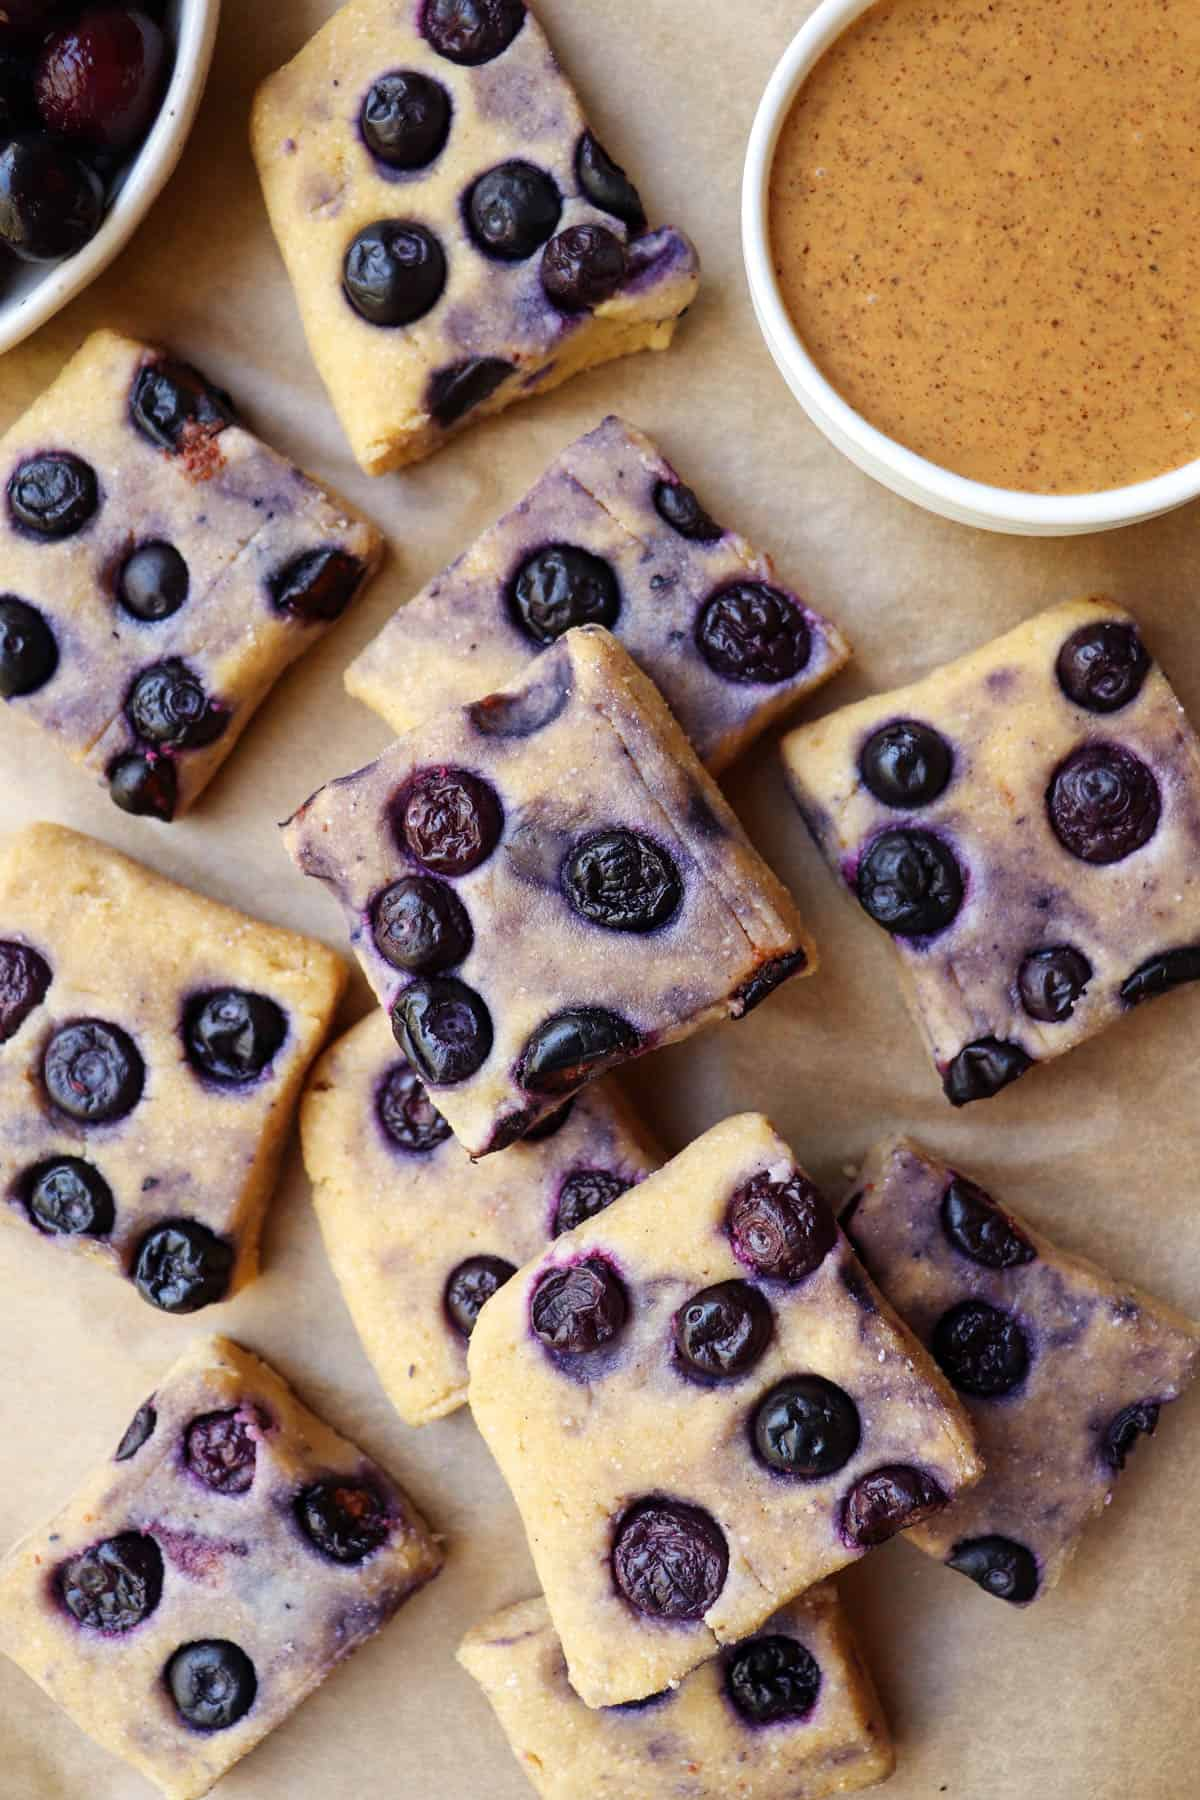 Top view of blueberry fudge bars stacked on top.